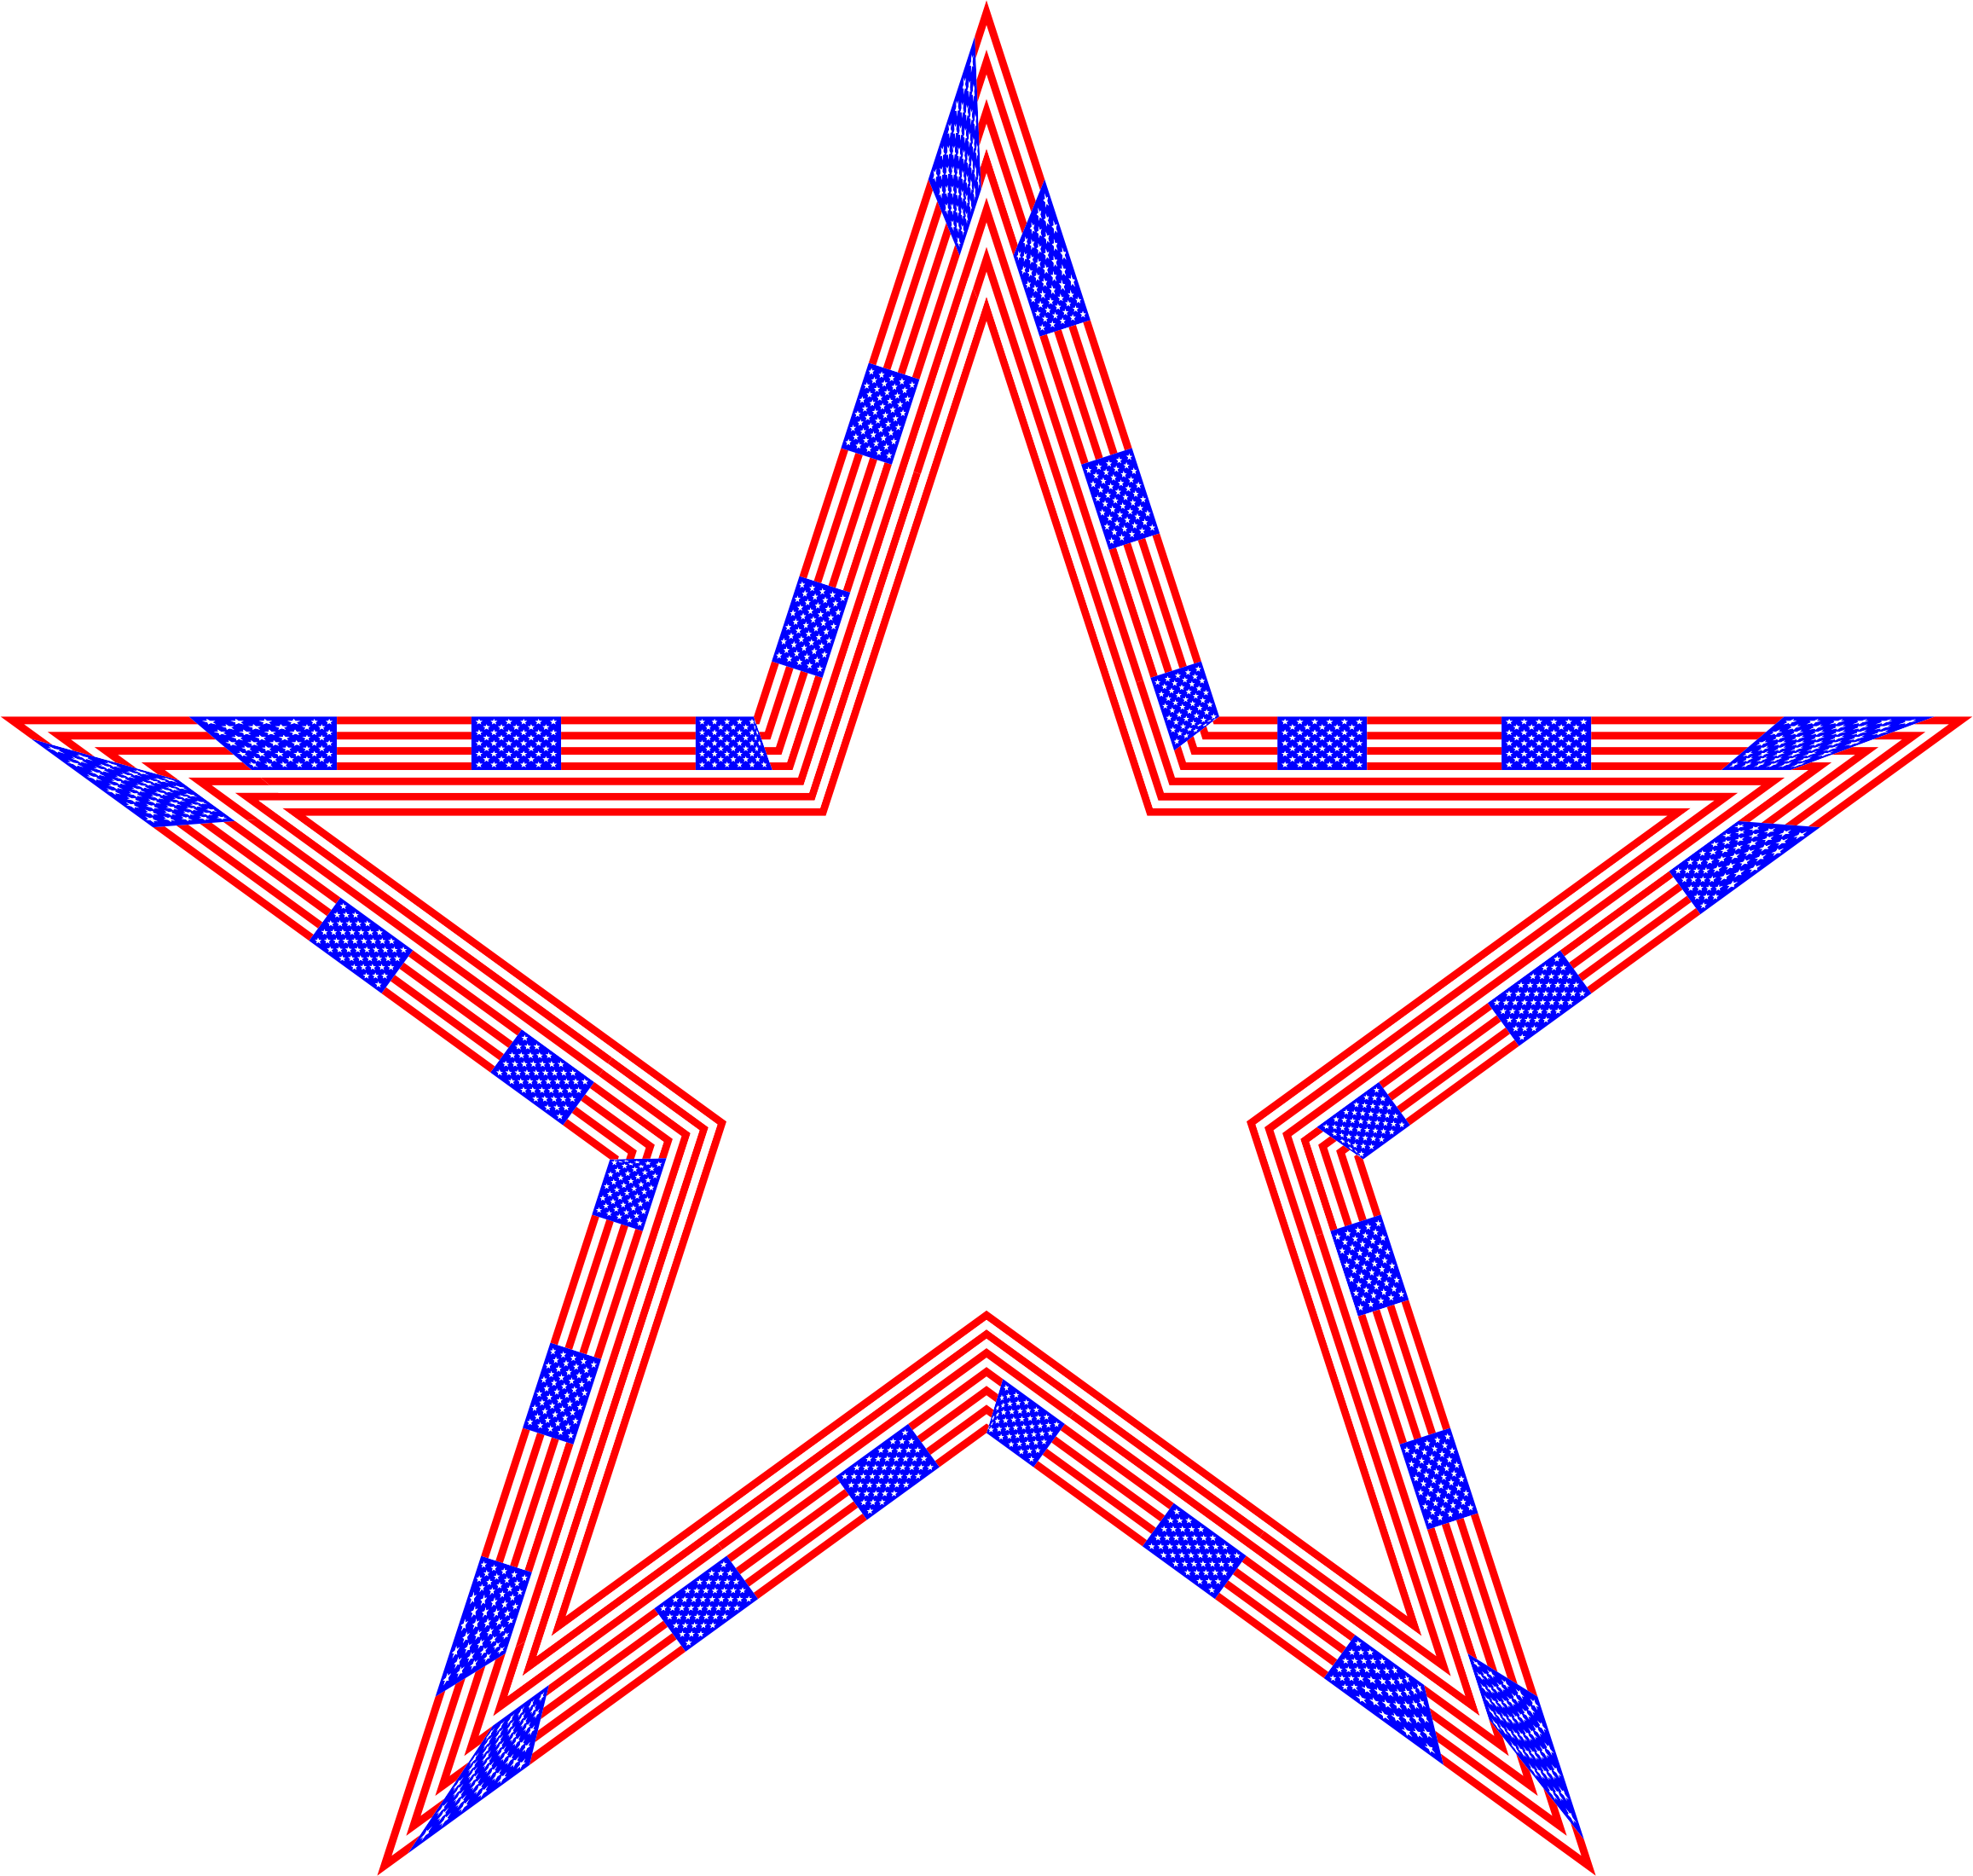 Chalk star clipart picture black and white stock Star Clipart | Stars clipart⭐ | Pinterest | Star clipart picture black and white stock